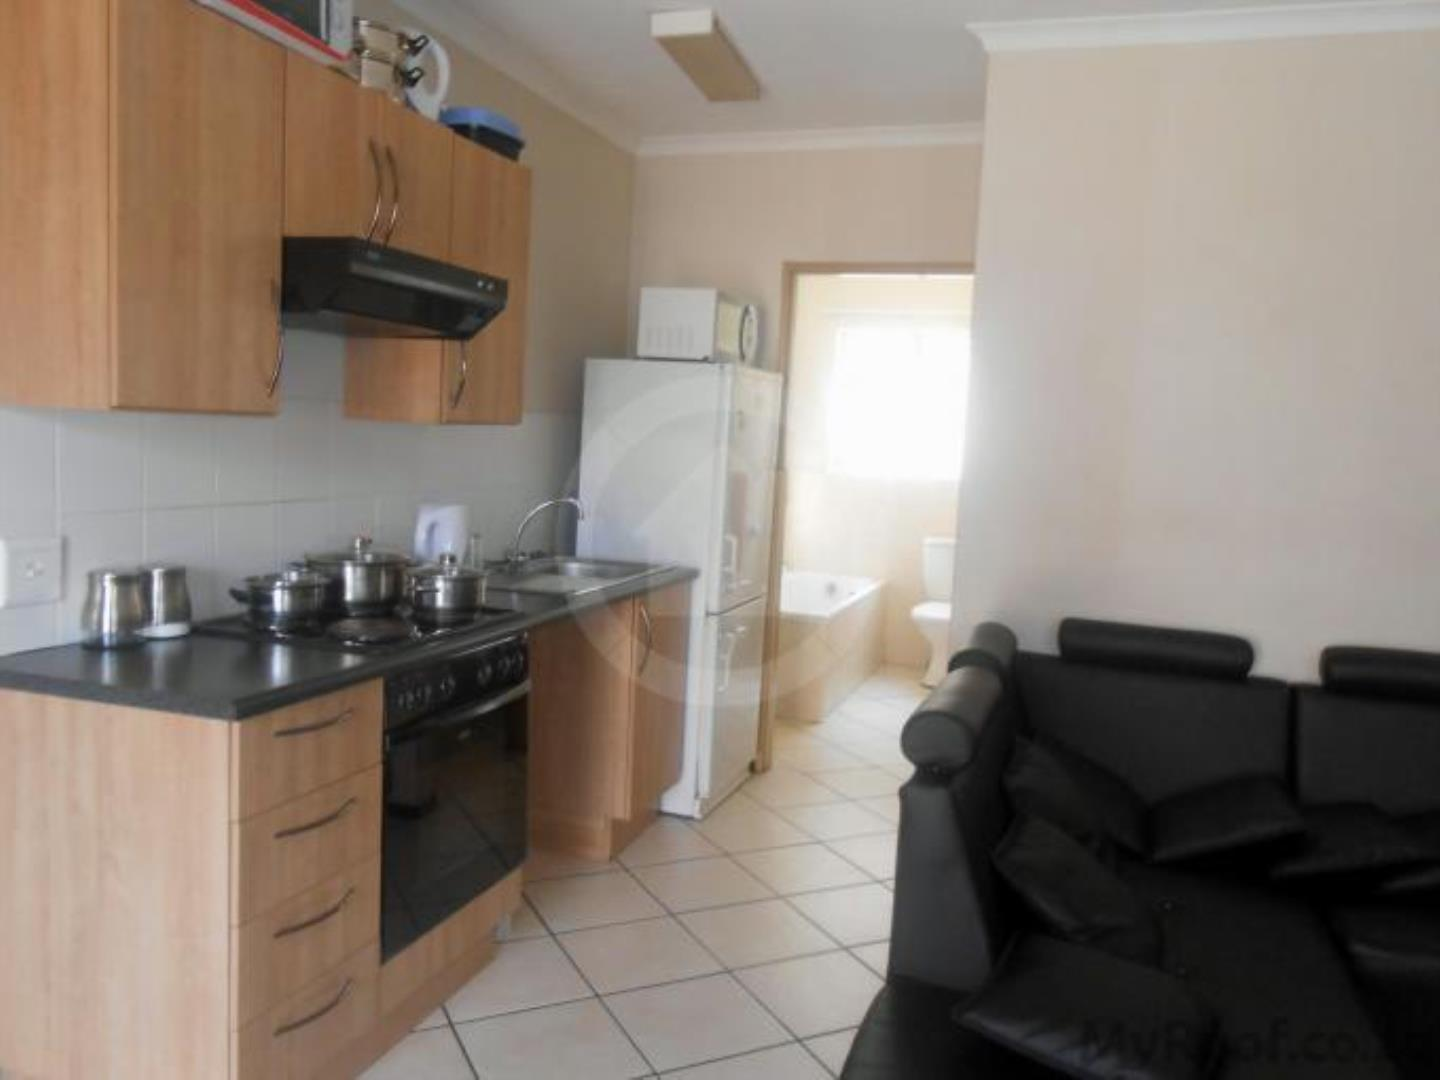 1 Bedroom Apartment for Sale in Florida, Roodepoort - Gauteng